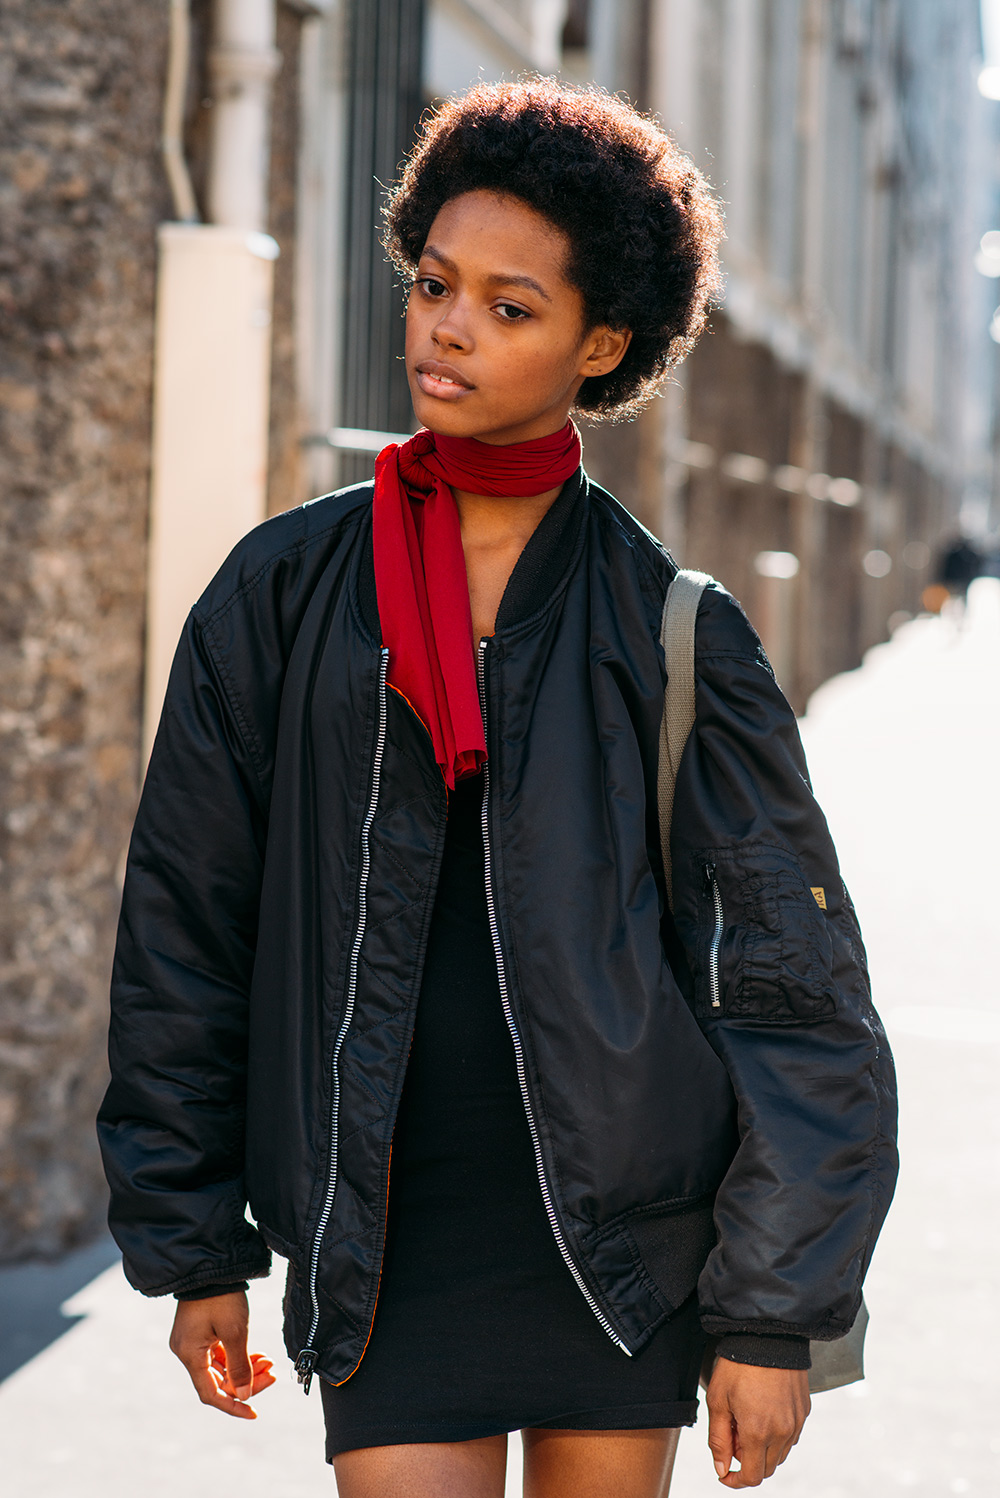 Paris Fashion Week Streetstyle by The Petticoat -Karly Loyce Model after John Galiano Show Paris PFW